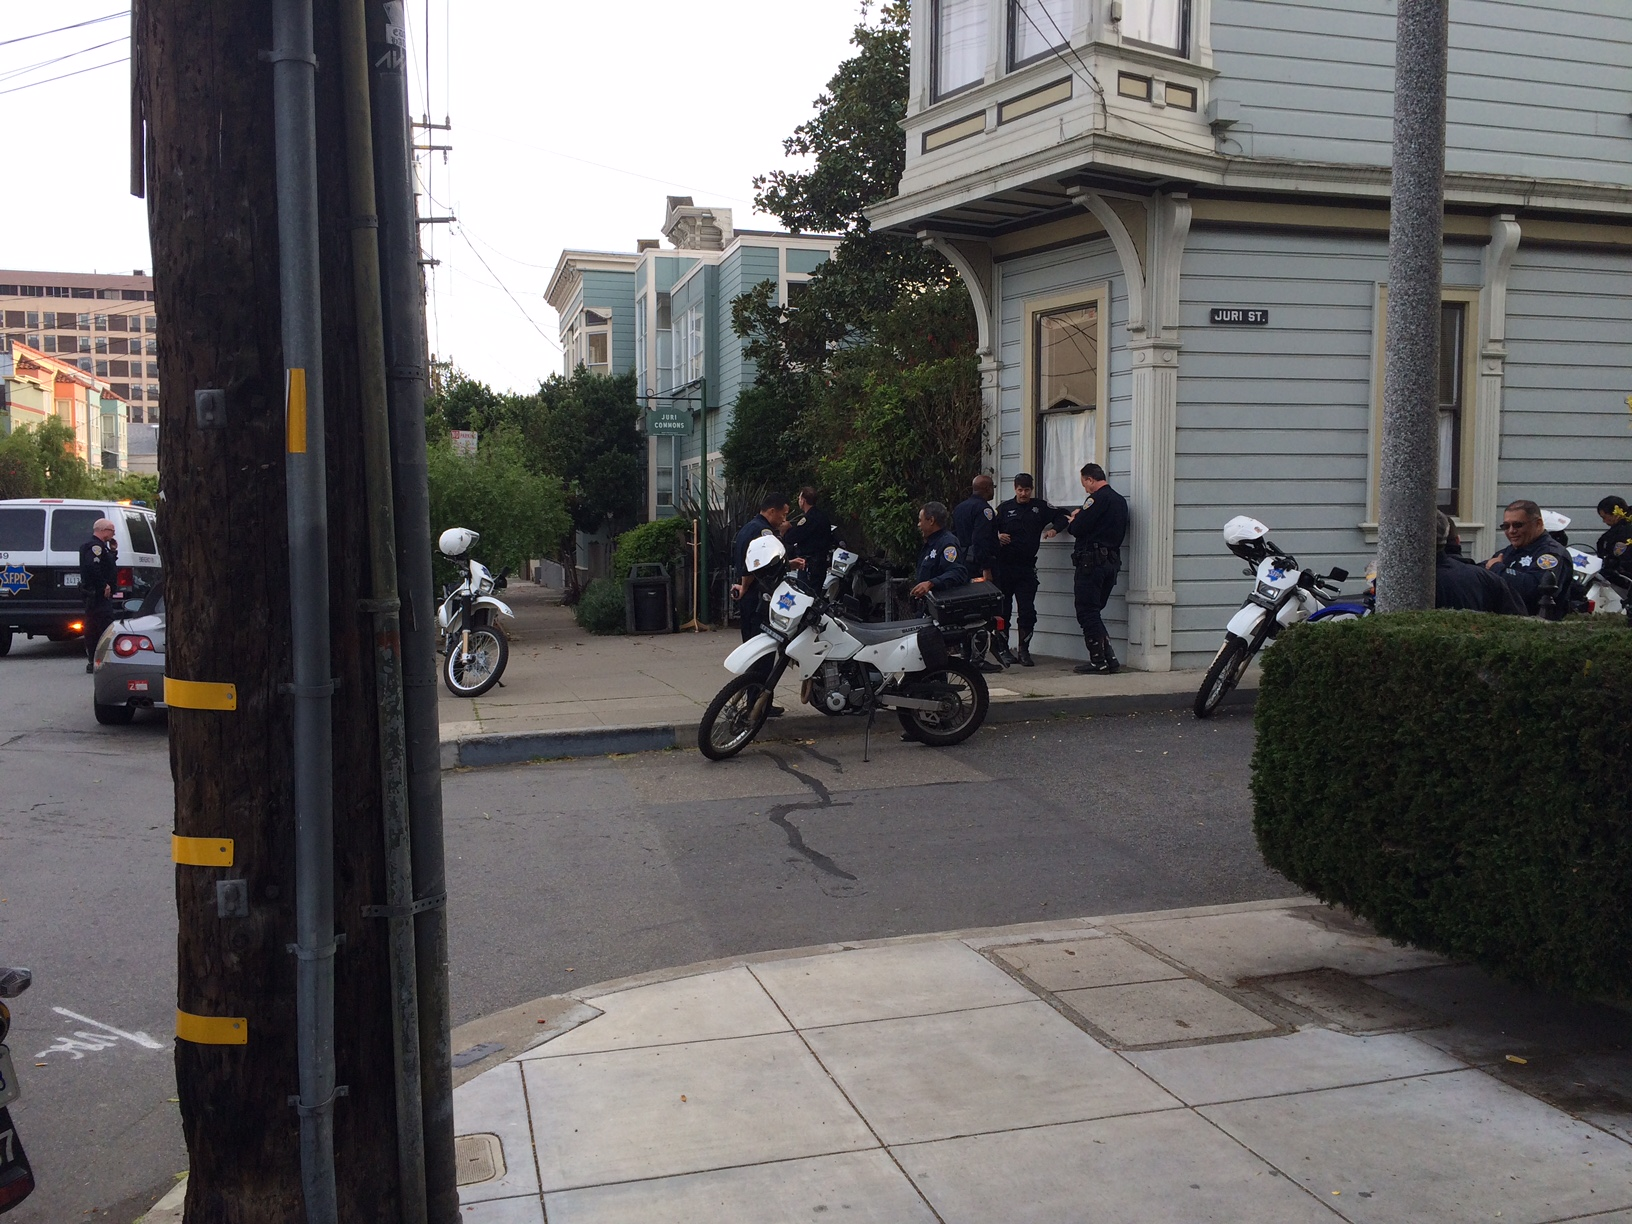 Police stand by motorbikes they used to patrol the Bernal Heights Park trail. Photo by Mark Rabine.